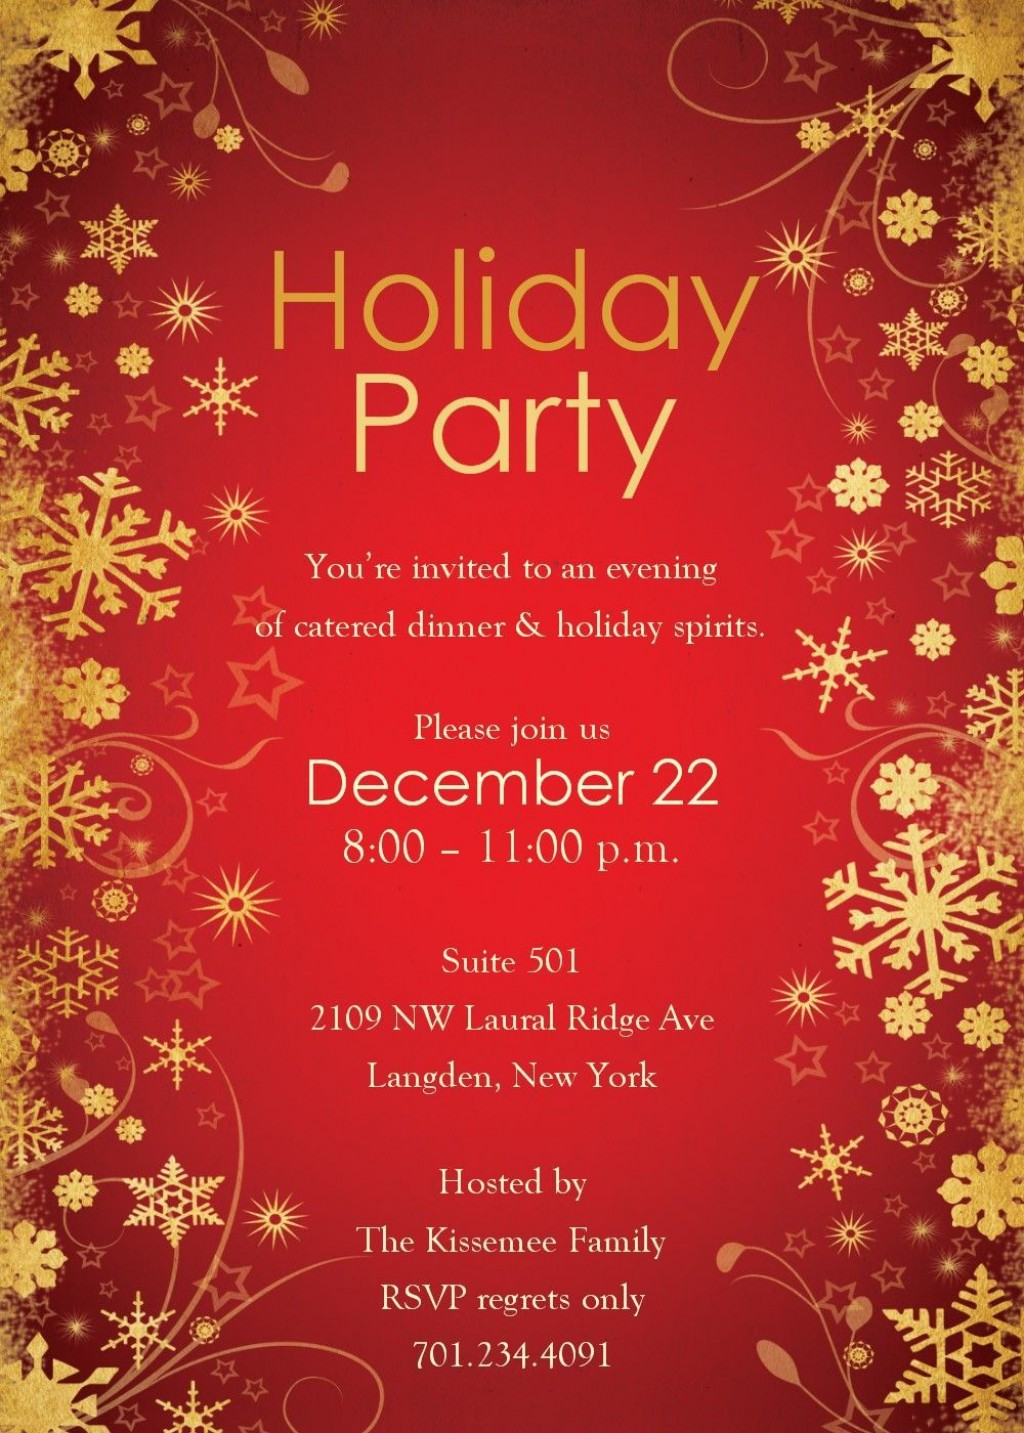 007 Imposing Free Christma Invitation Template Word High Def  Holiday Party EditableLarge